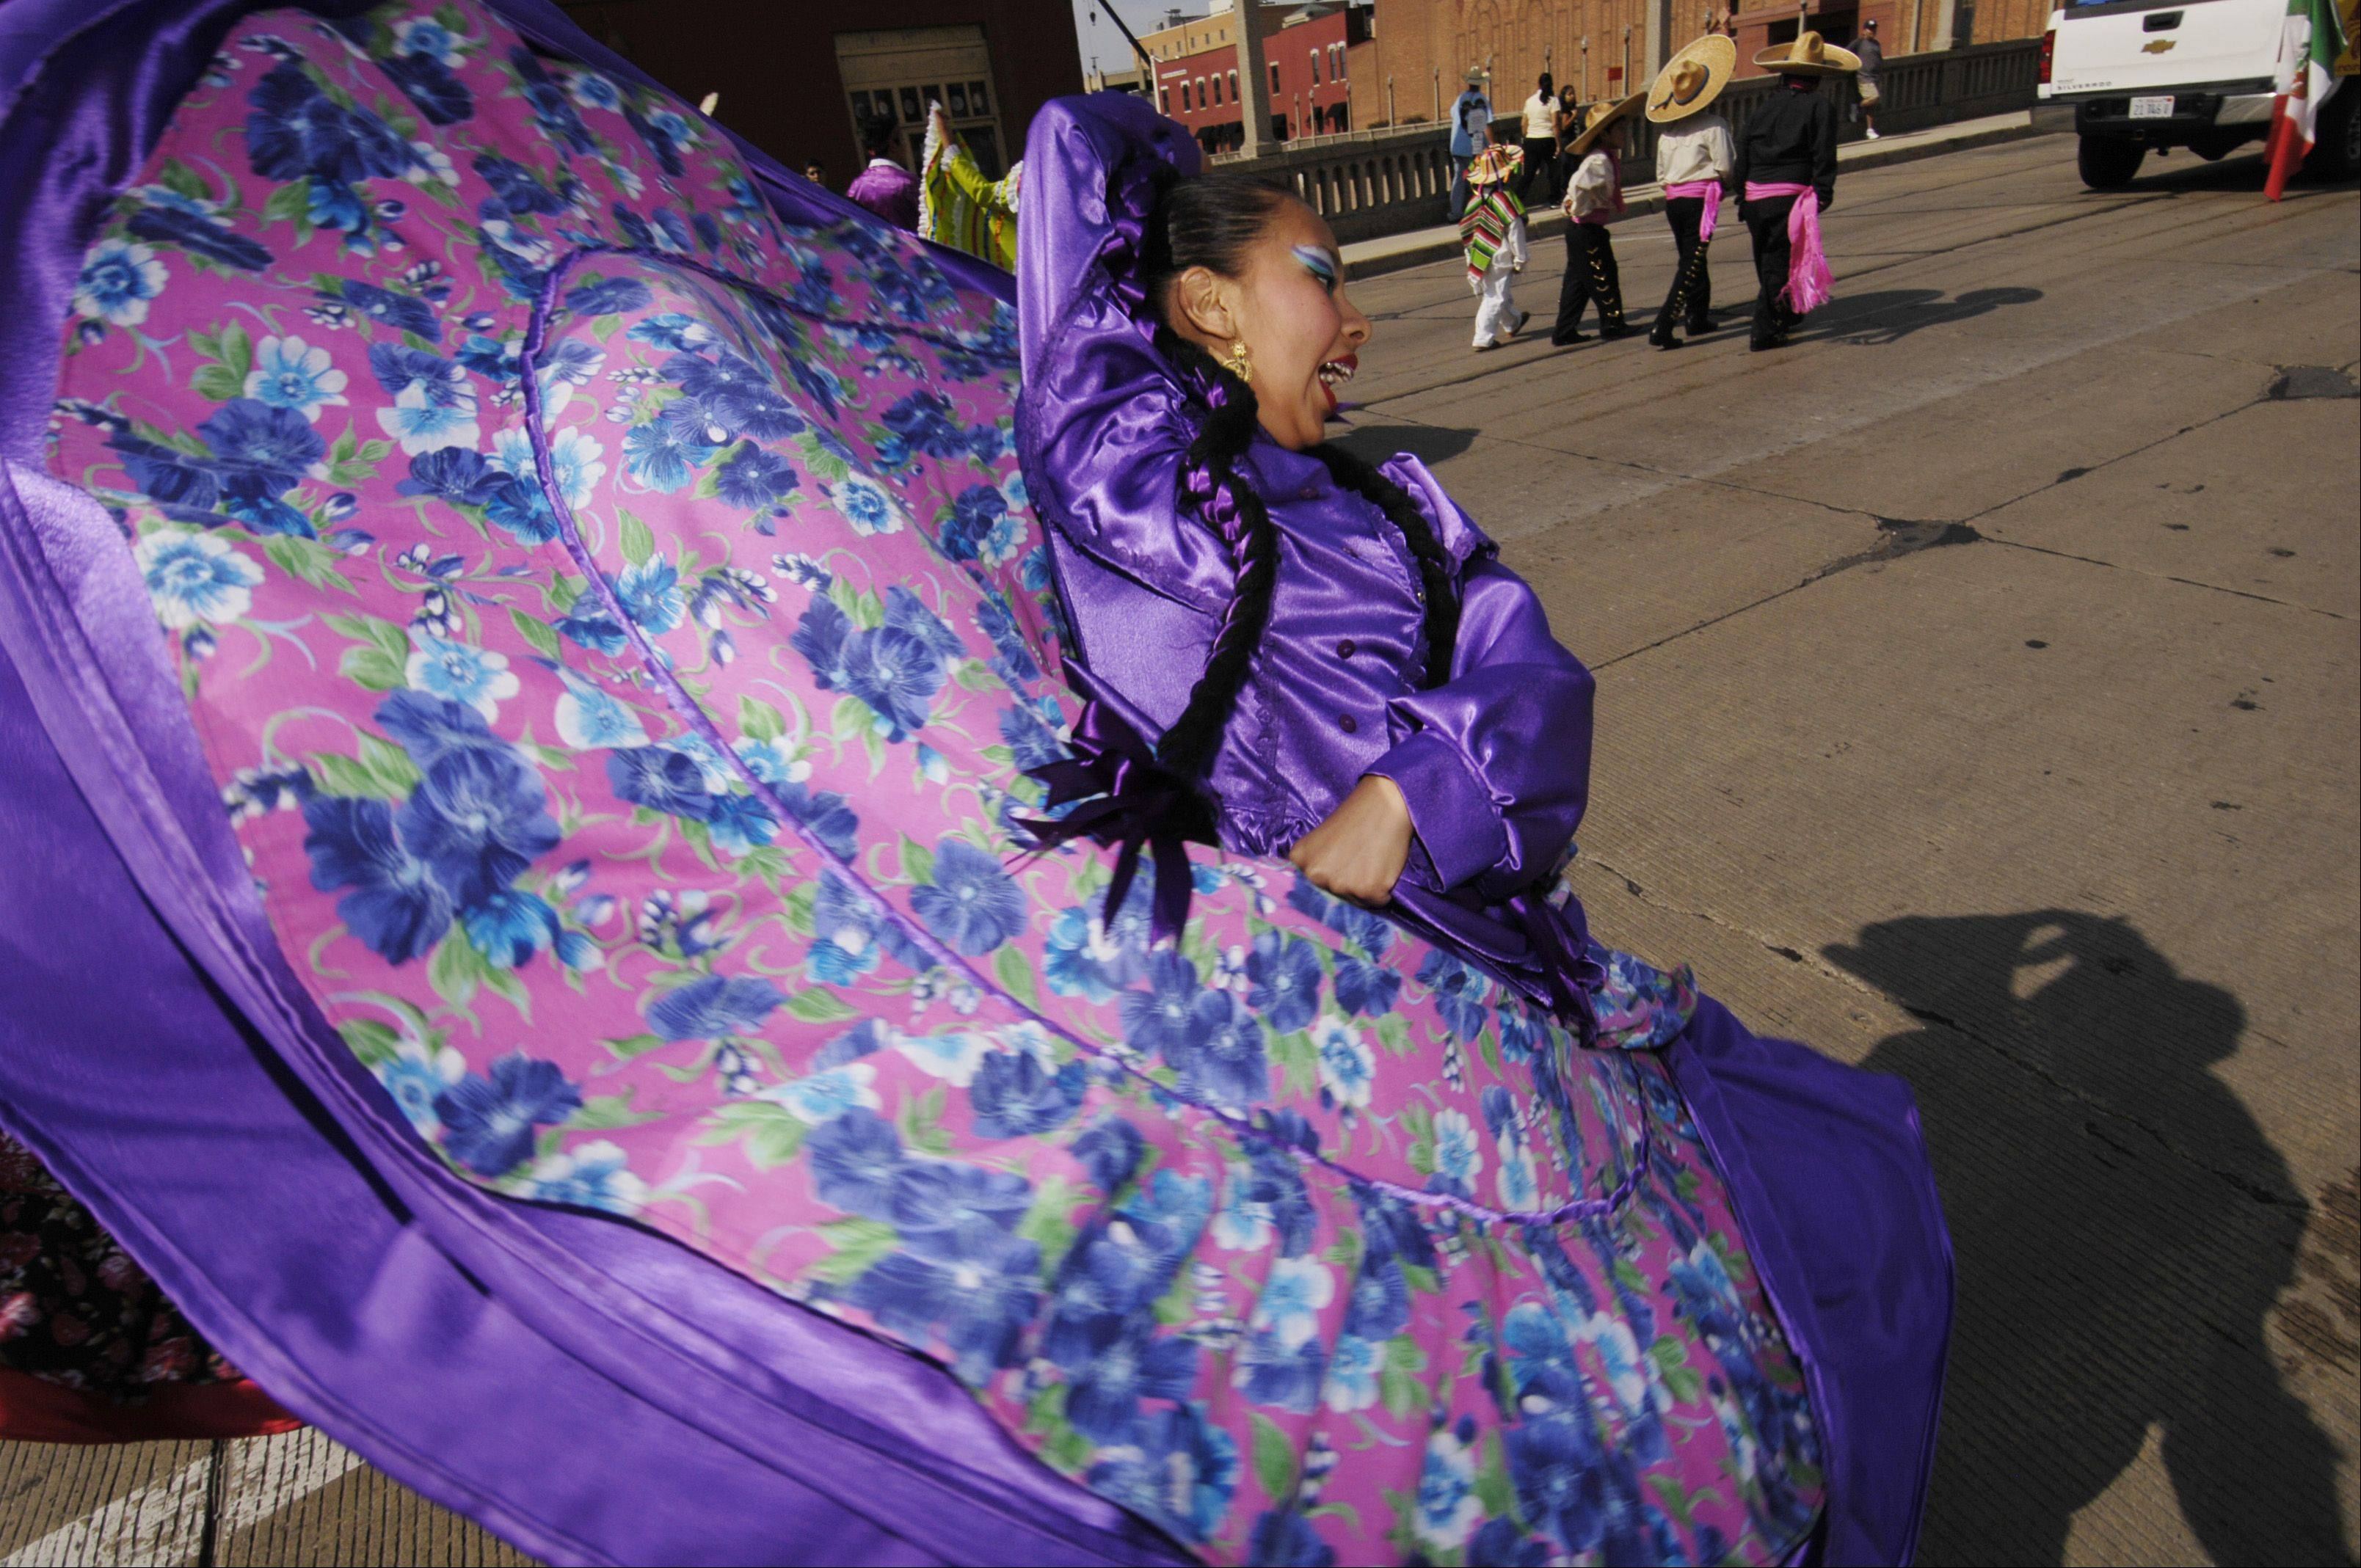 Ballet Folklorico Quetzalcoatl performs Sunday during the third annual Fiestas Patrias in celebration of Mexican independence in Aurora. The three-day festival celebrates the region's diversity.